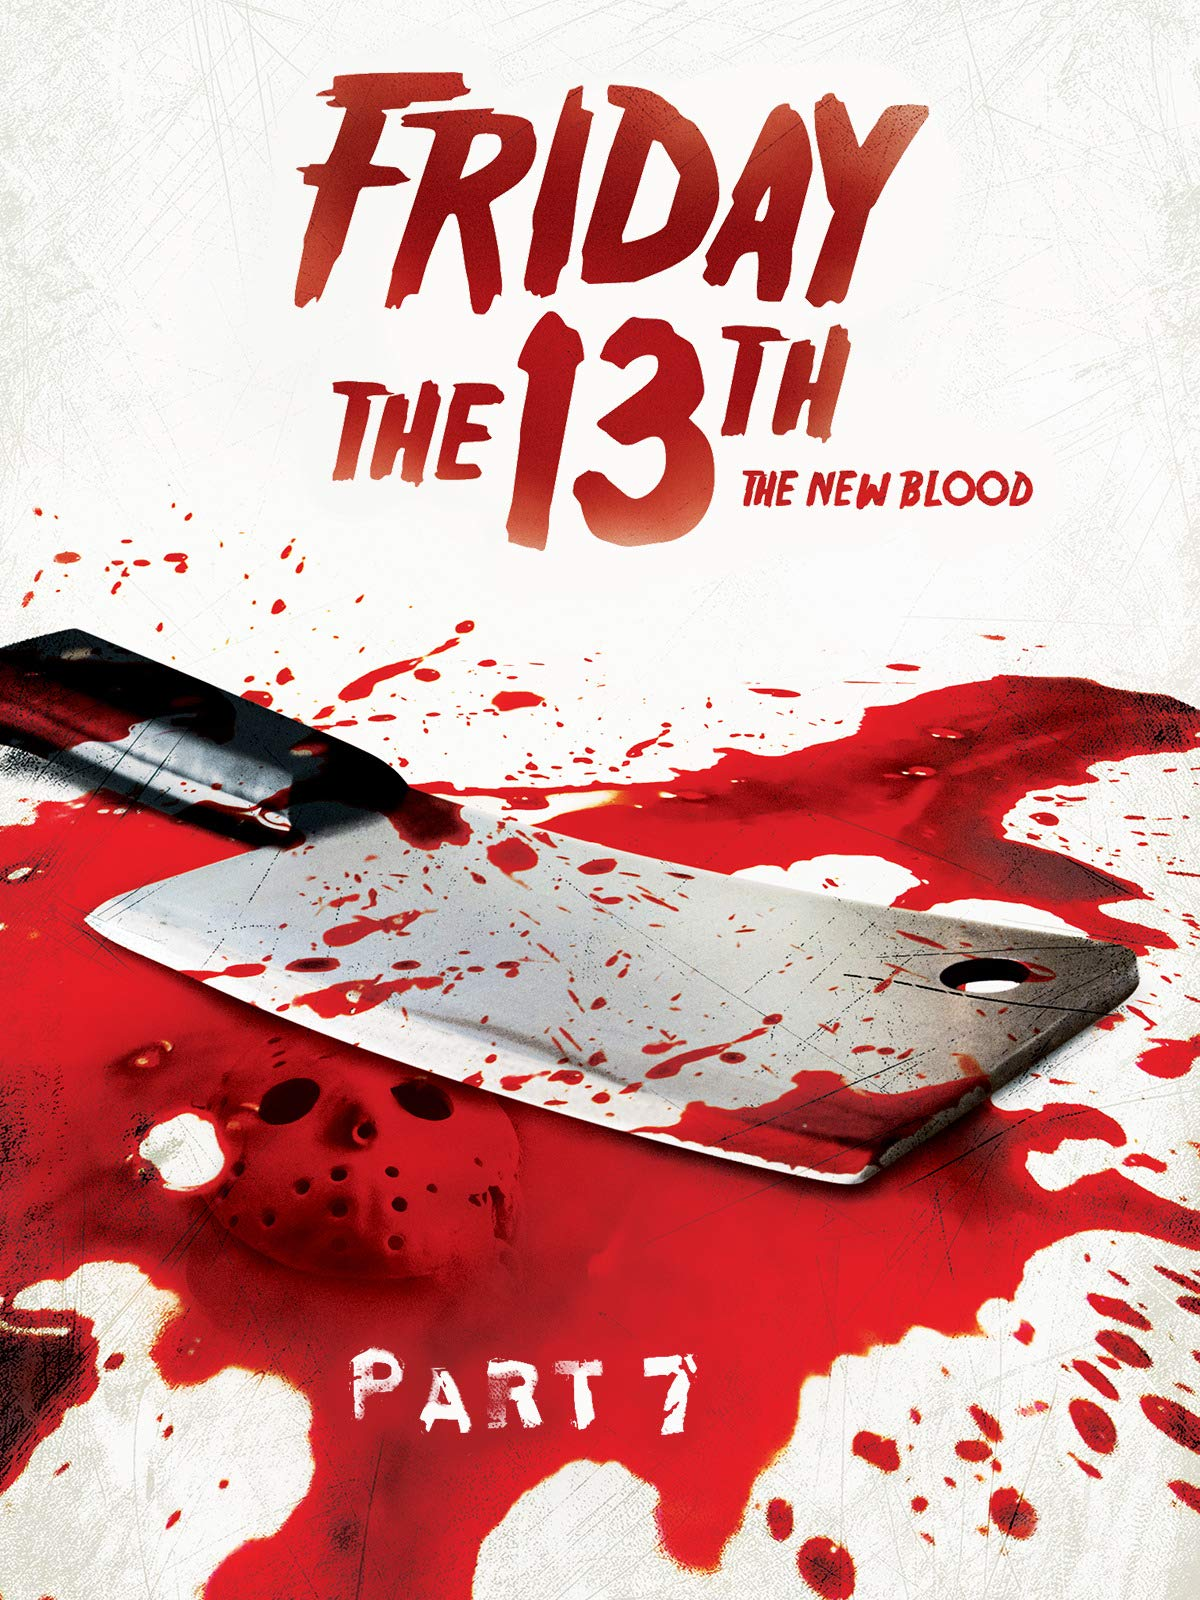 Friday the 13th VII: The New Blood